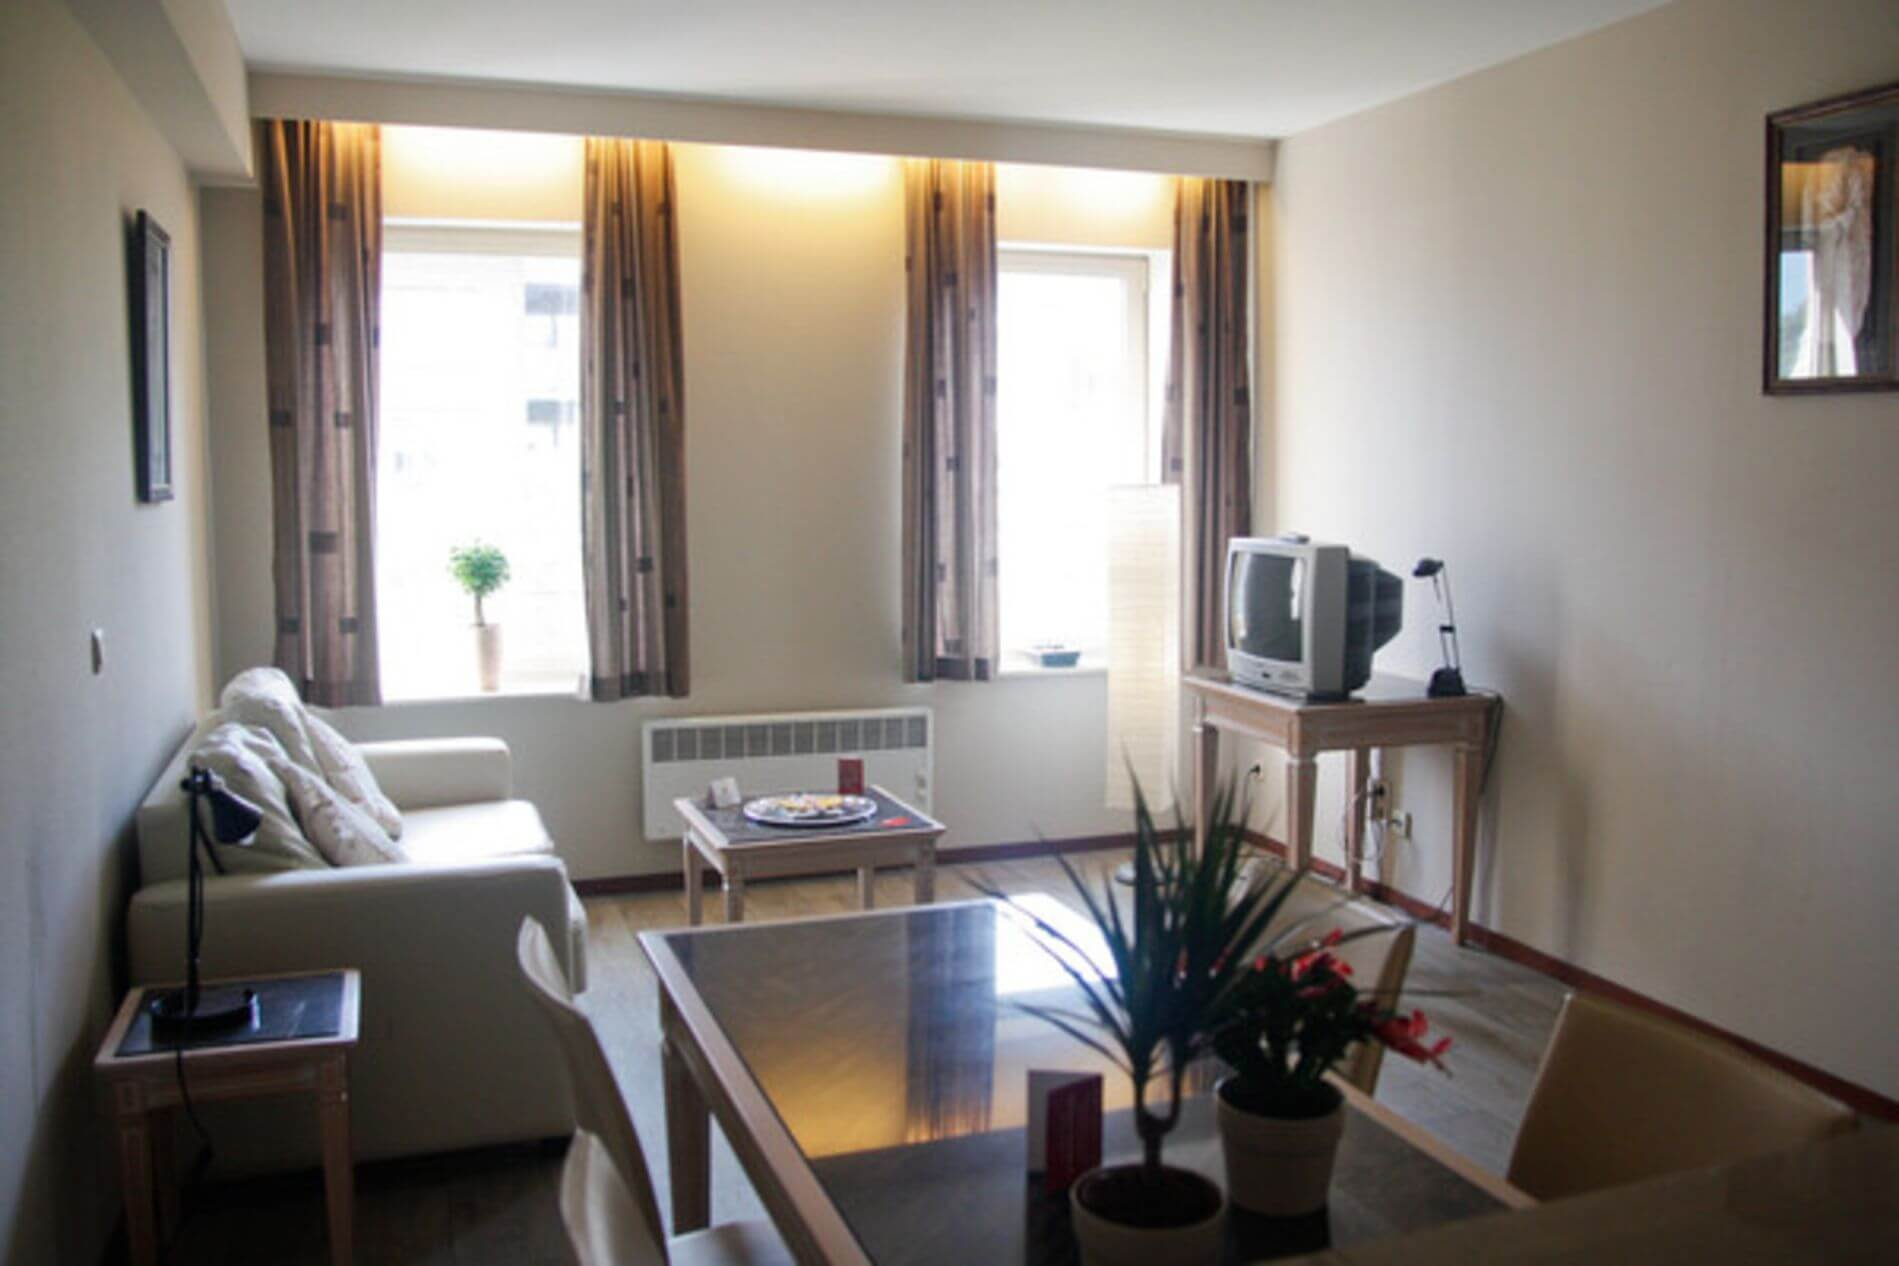 One bedroom apartment in Antwerp with everything you need